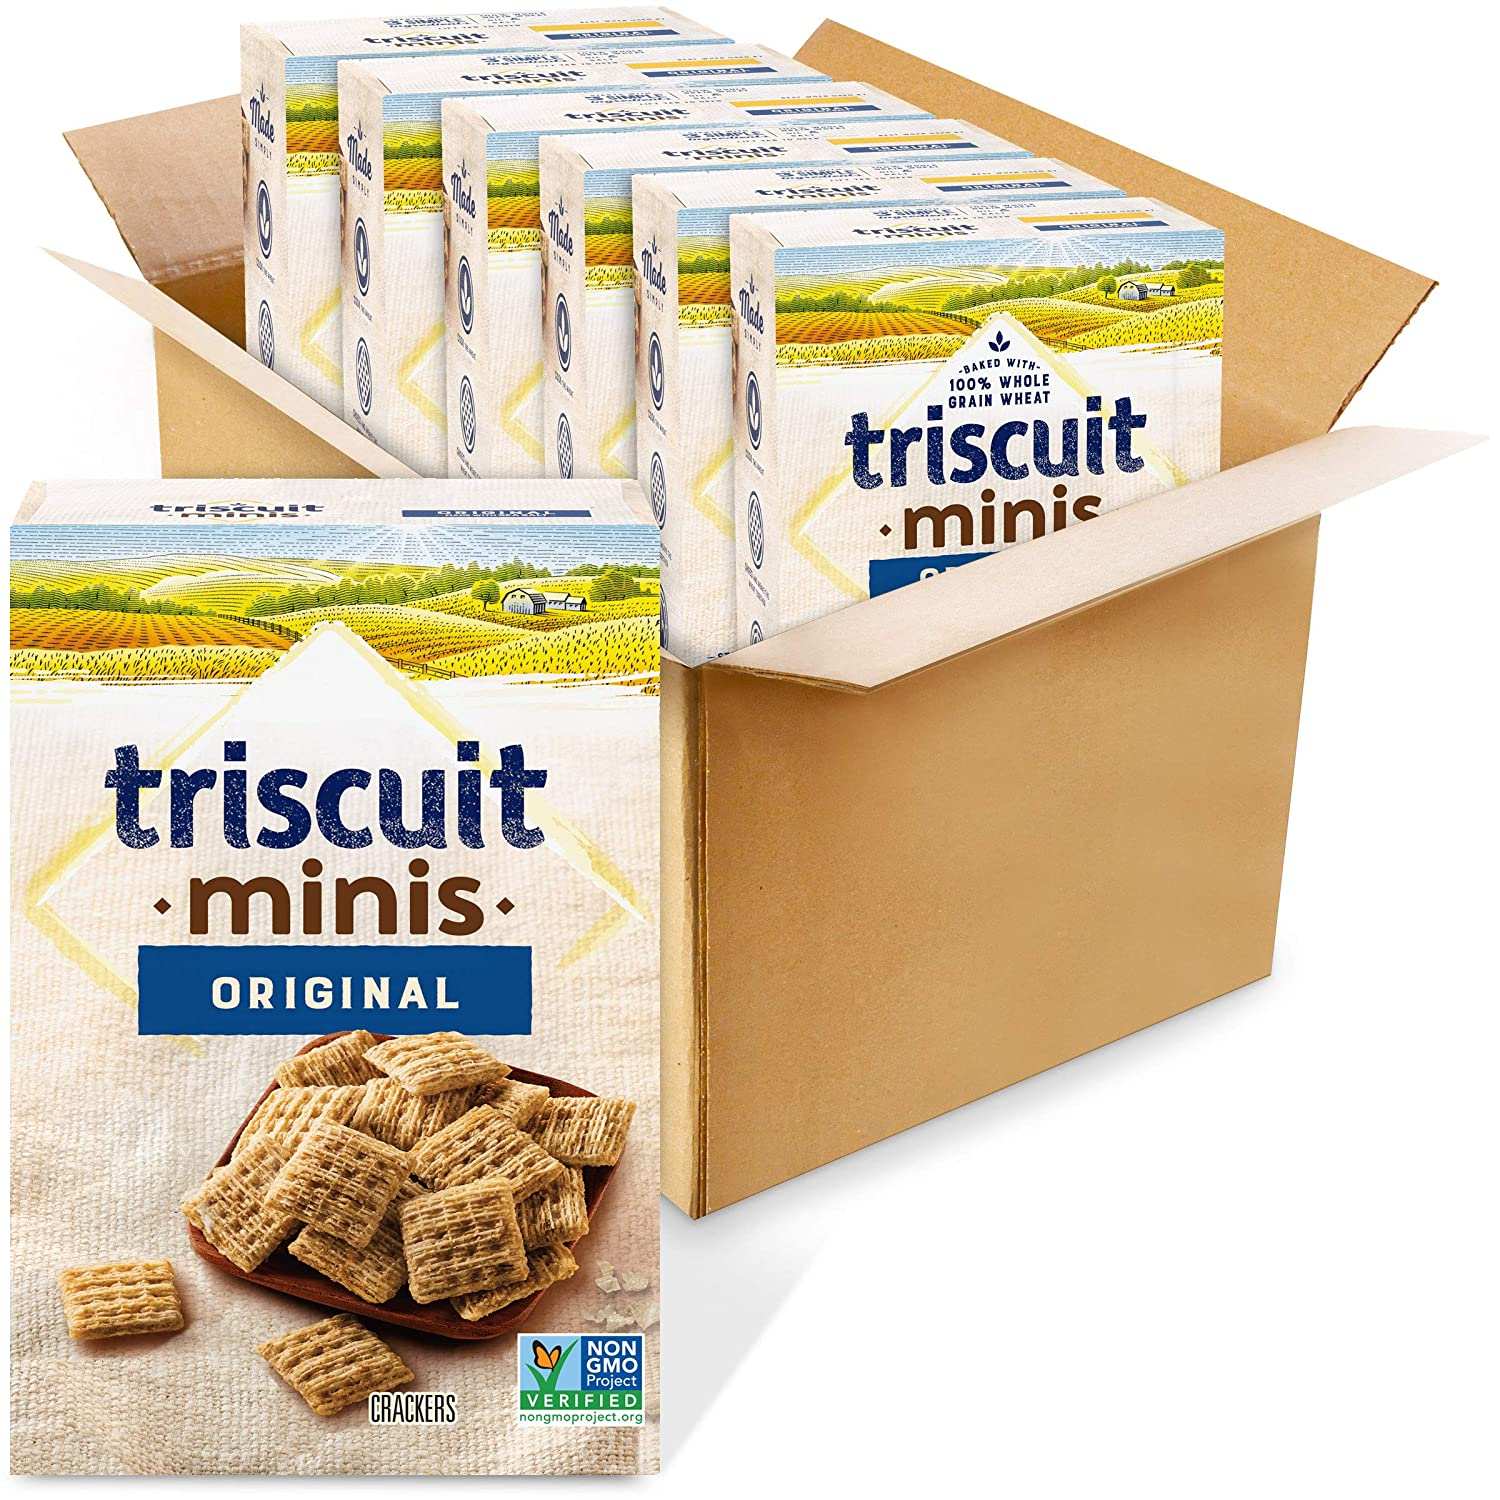 Triscuit Reservation Mini Original Crackers Non-GMO 8 Quality inspection of 6 Pack Ounce